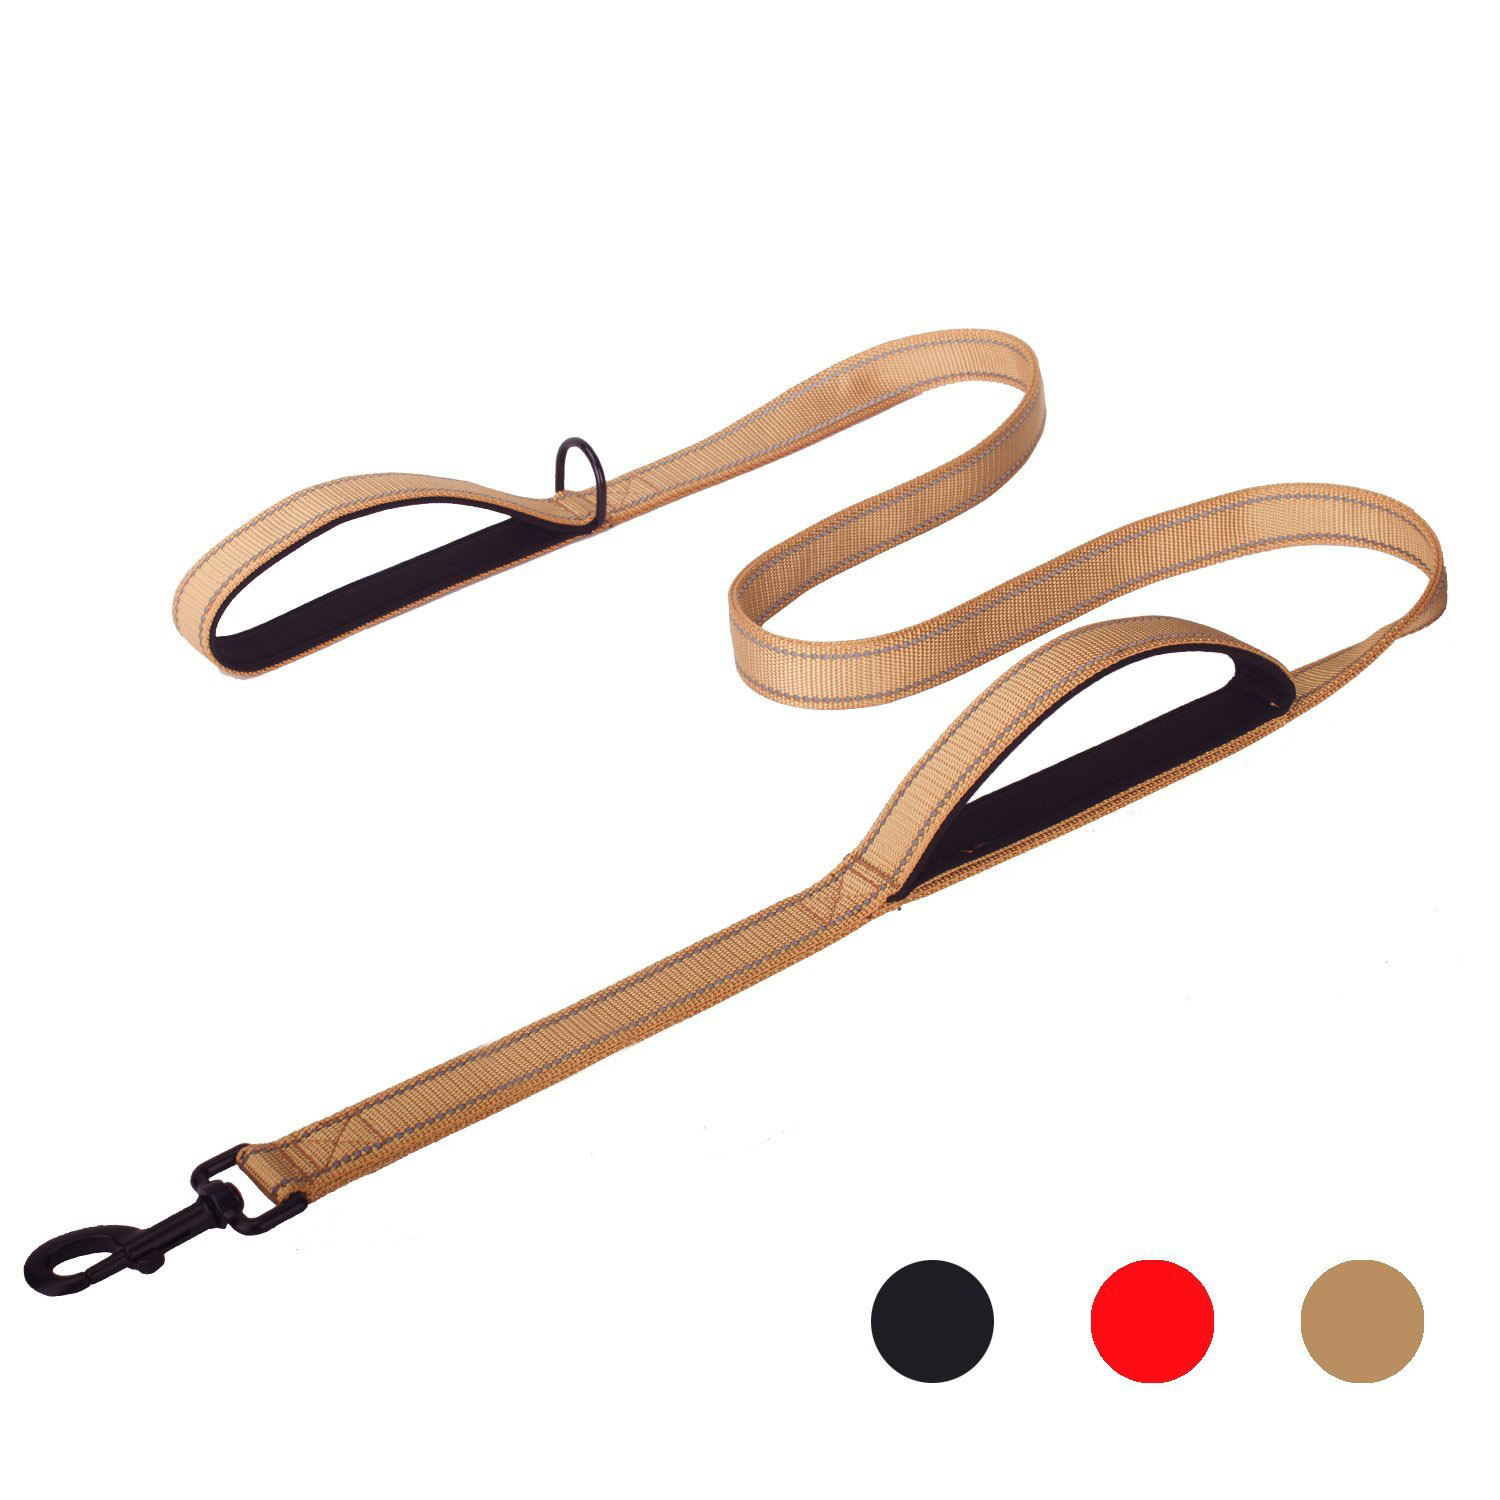 Heavy Duty Dog Leash - 2 Padded Traffic Handle For Extra Control, 50inch Long - Reflective Dog Leashes for Medium to Large Dogs